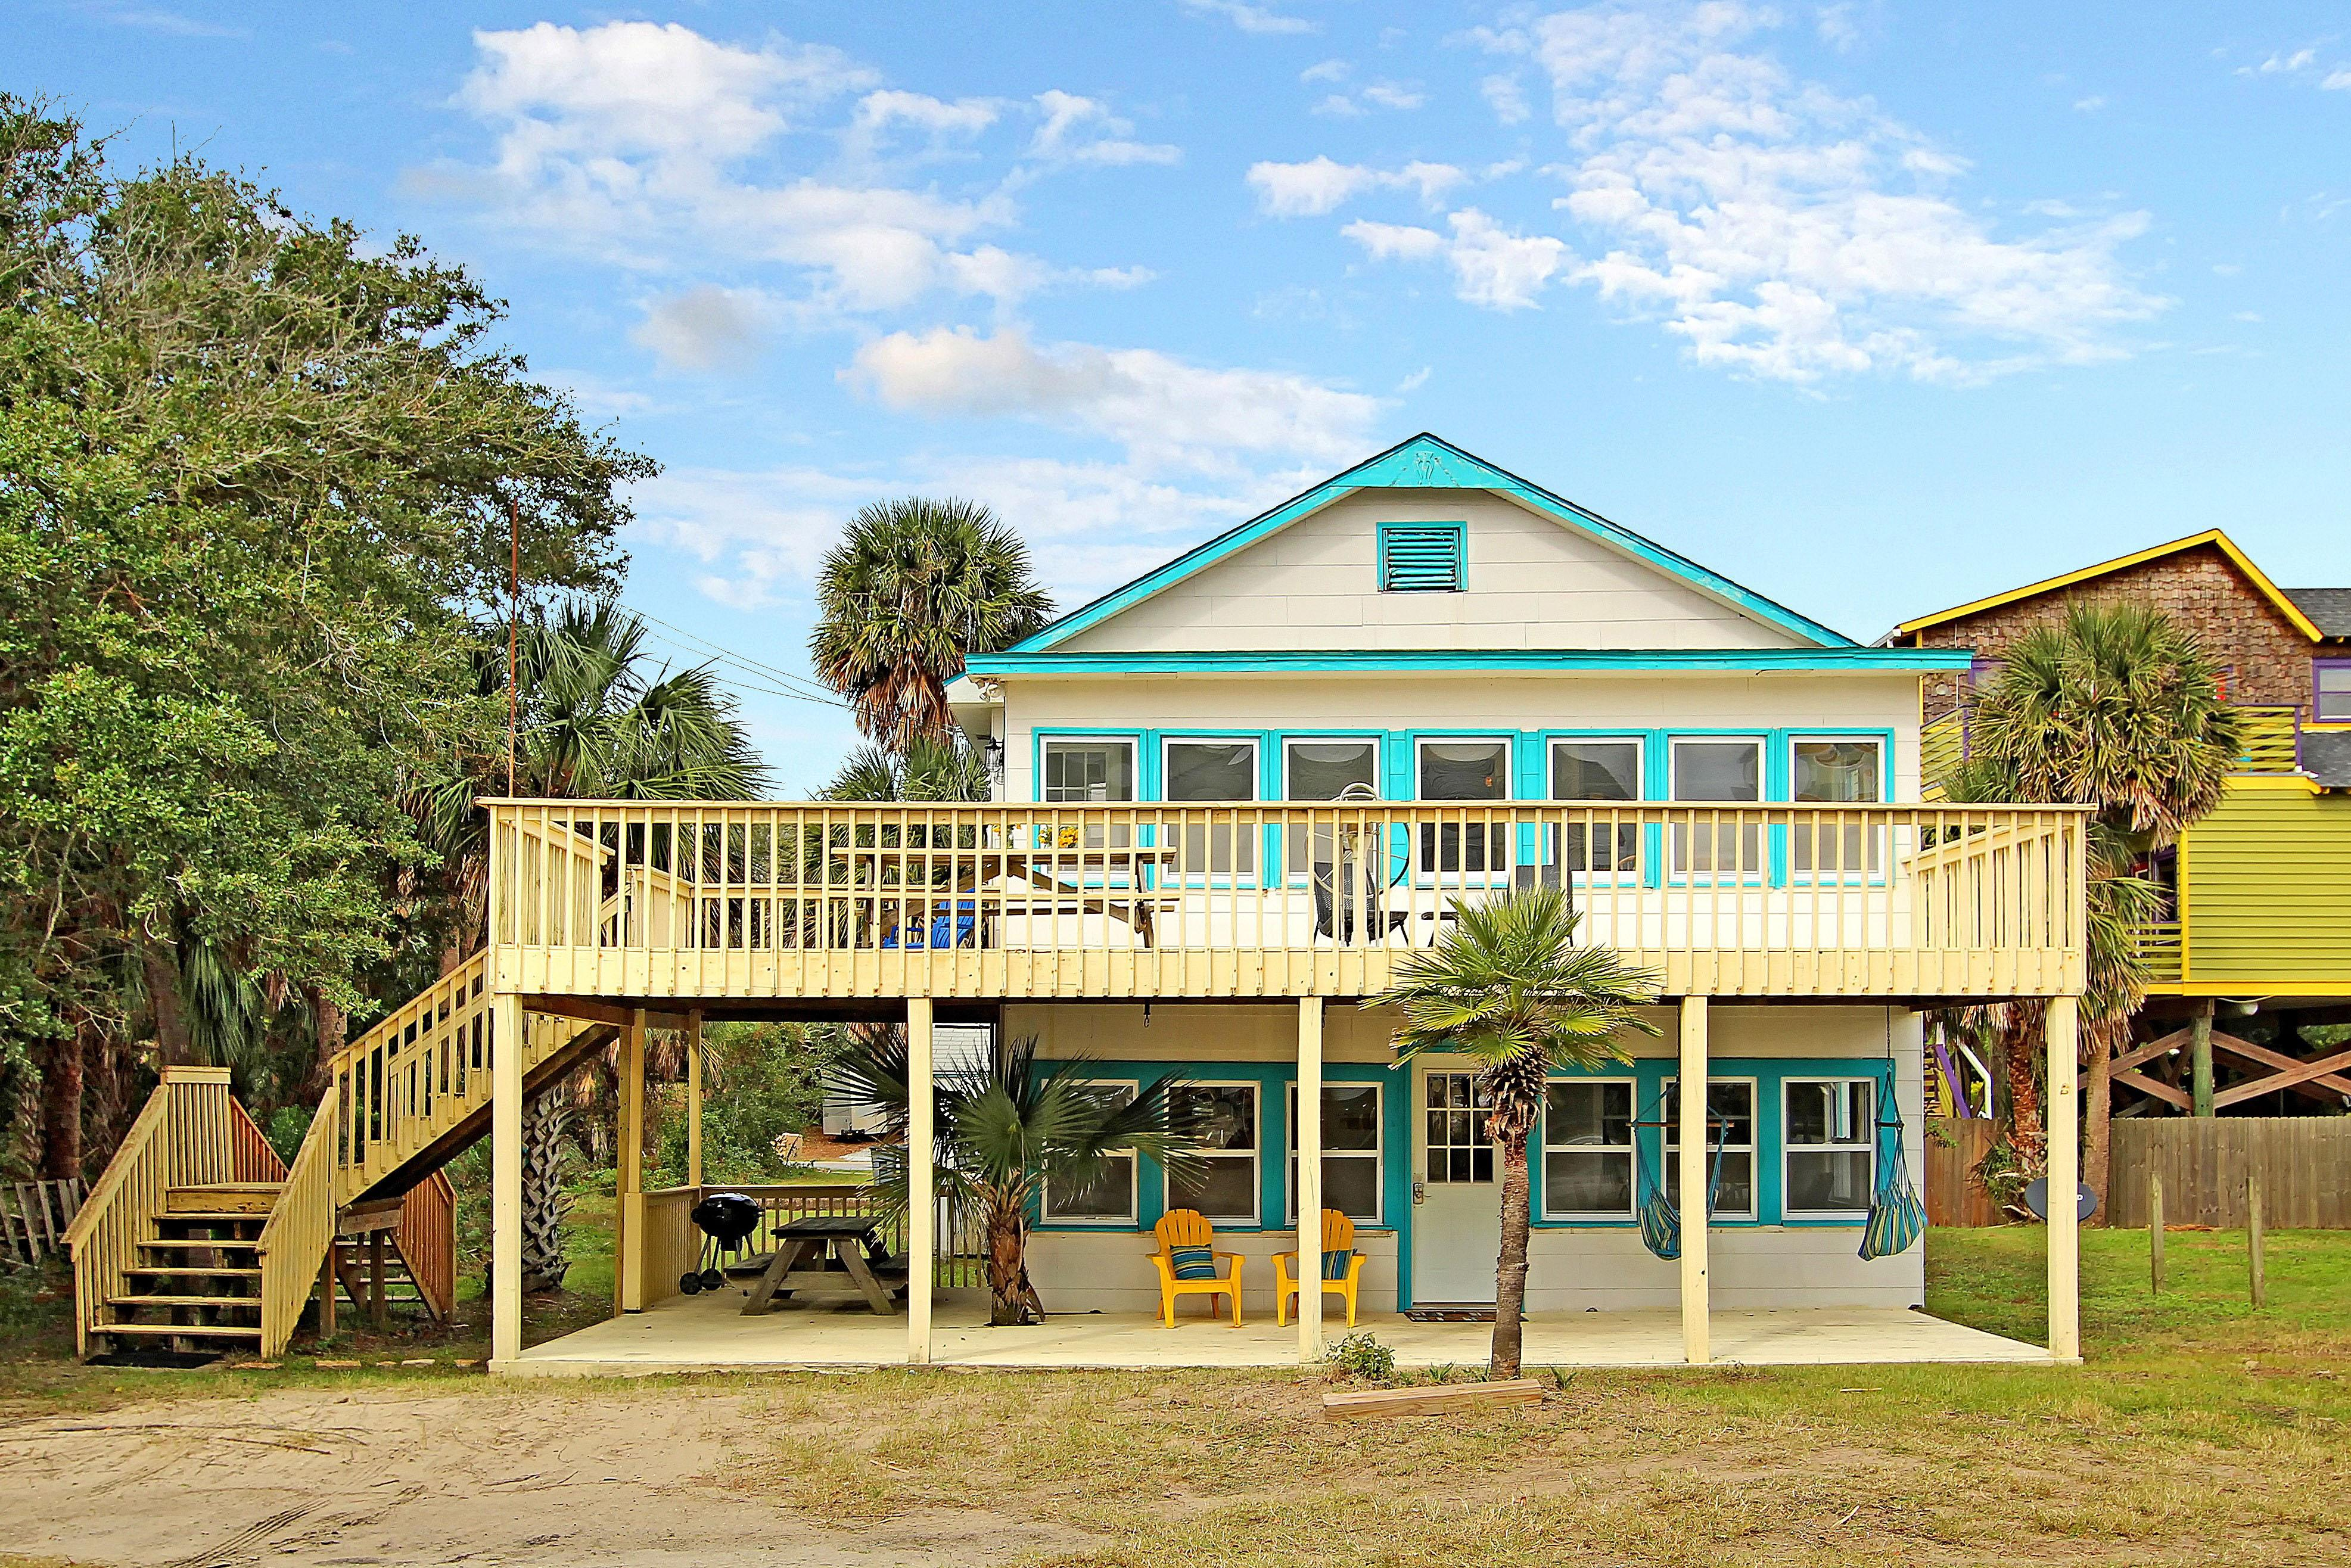 Welcome to Folly Beach! This 2-unit beach bungalow is professionally managed by TurnKey Vacation Rentals.